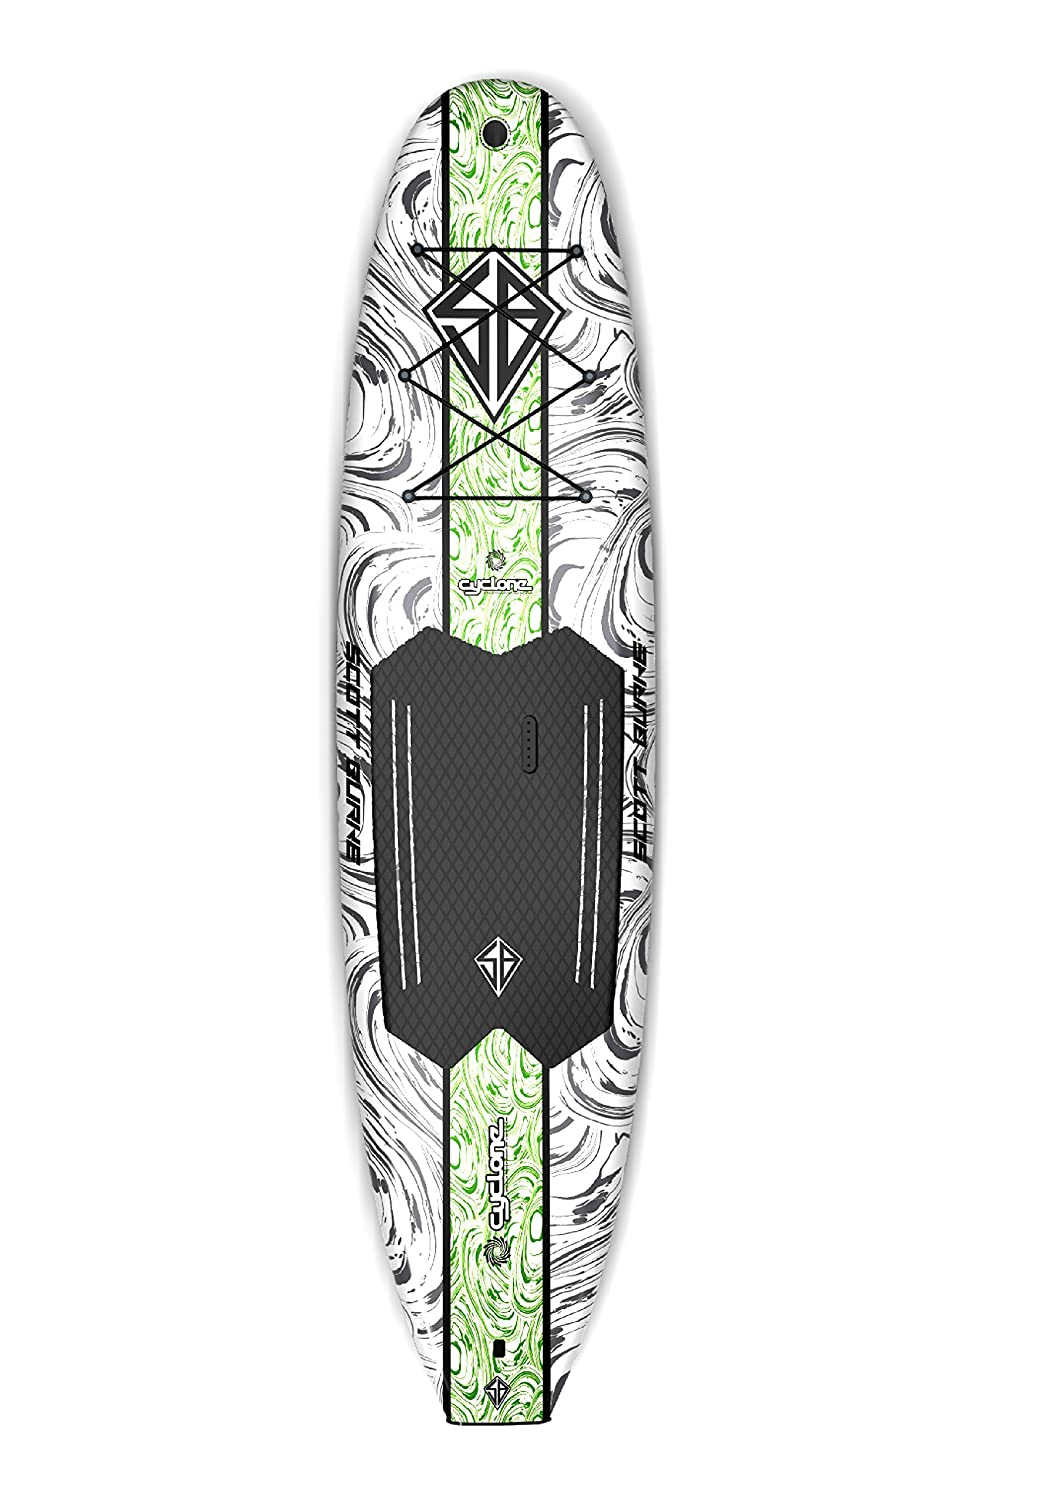 Scott Burke Burke 106 Stand Up Paddleboard, Large